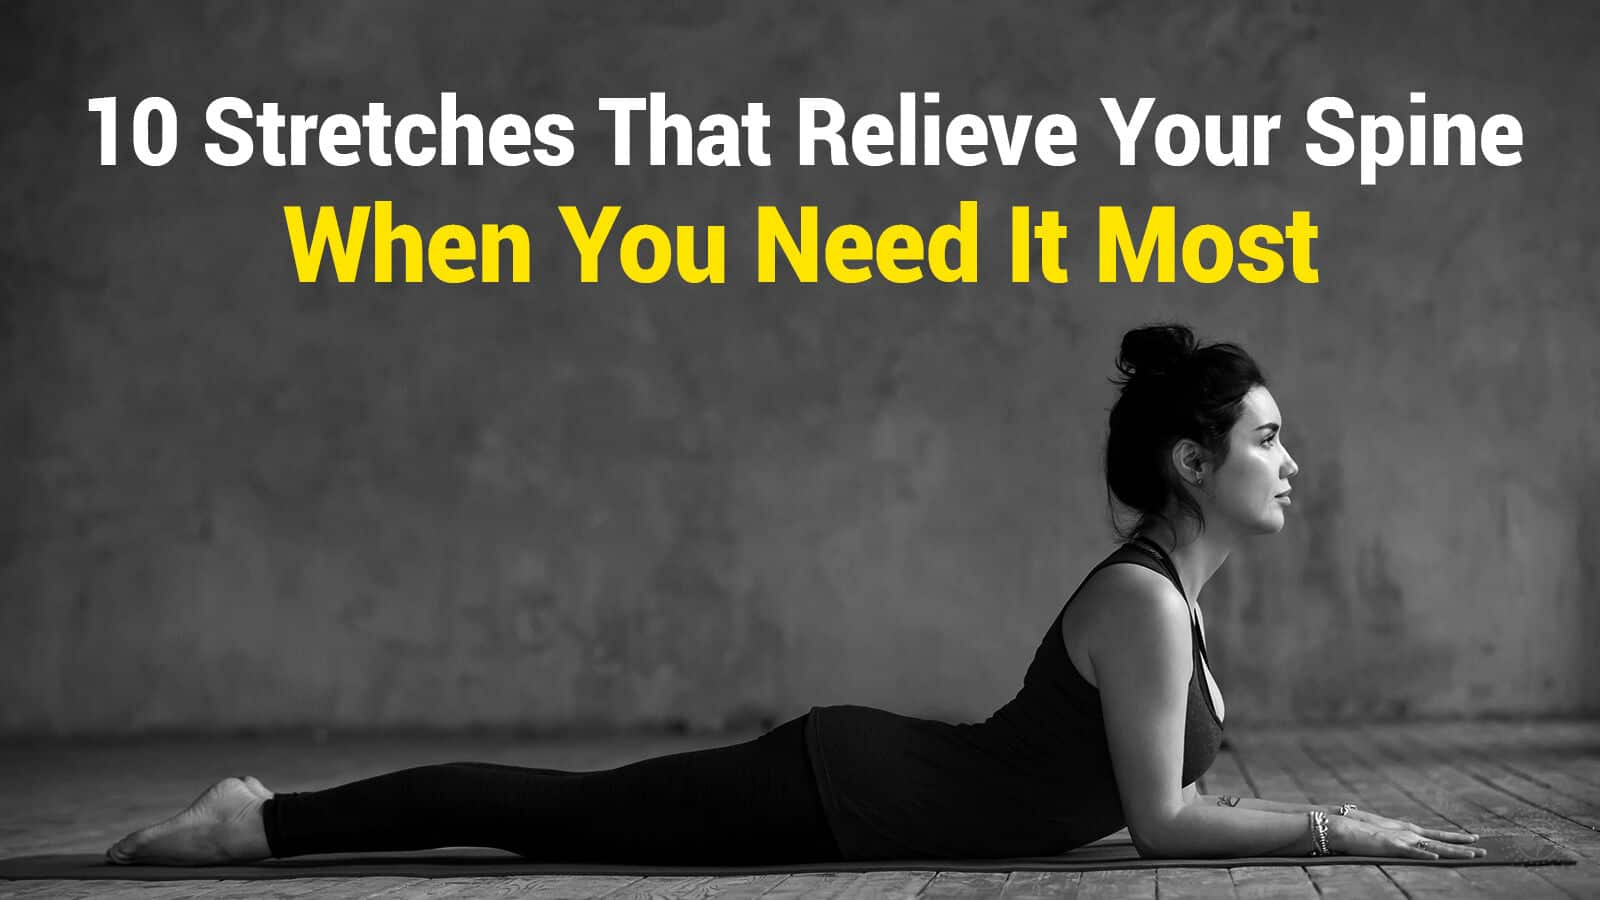 relieve your spine